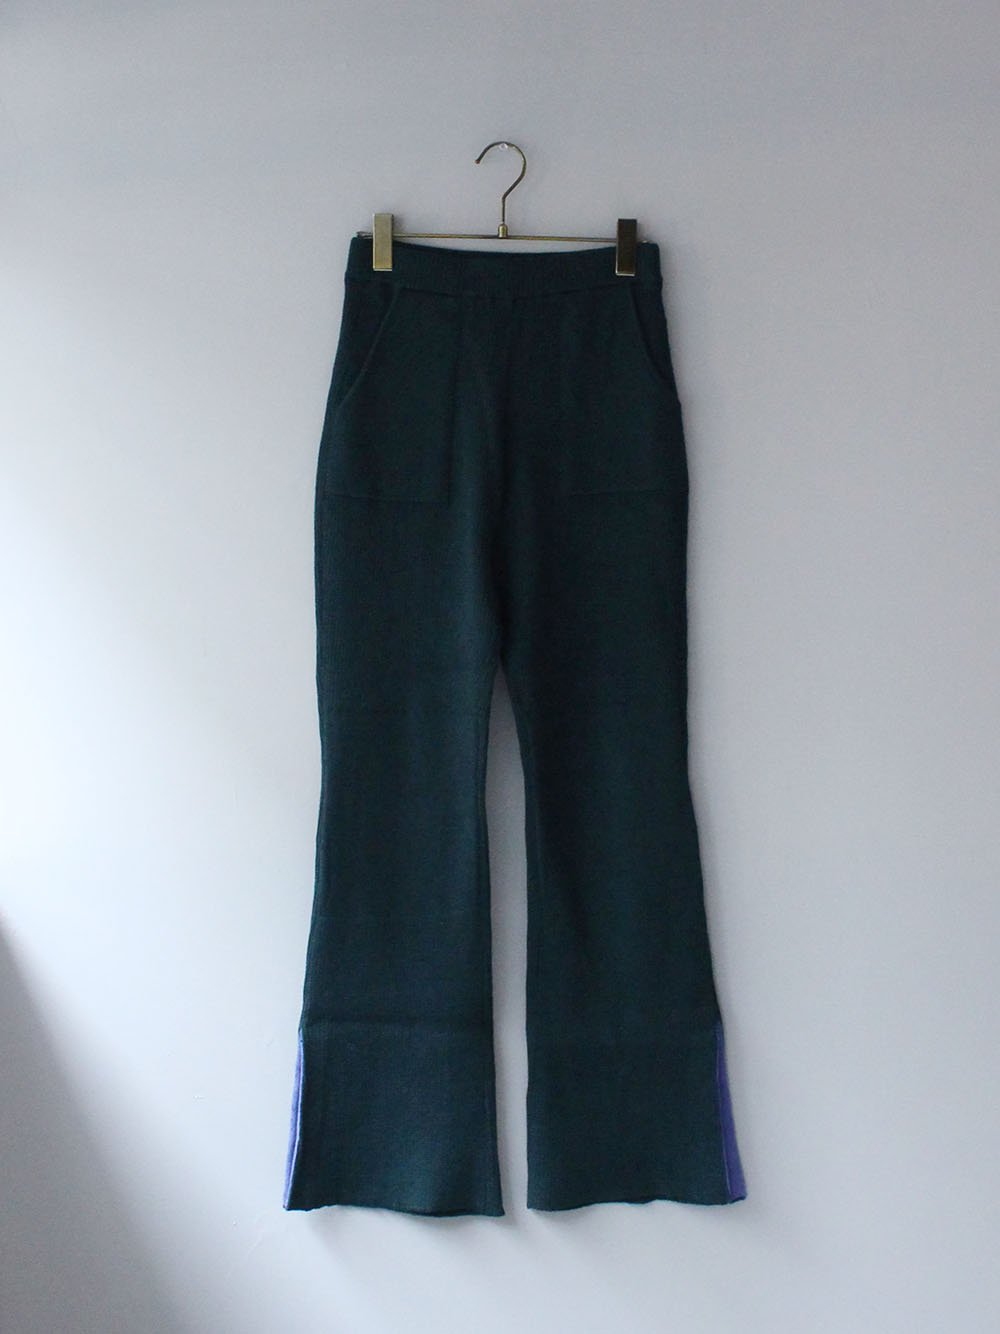 """<img class='new_mark_img1' src='https://img.shop-pro.jp/img/new/icons8.gif' style='border:none;display:inline;margin:0px;padding:0px;width:auto;' />FILL THE BILL"""" MILITARY COMMAND RIB PANTS (GREEN x PURPLE)"""